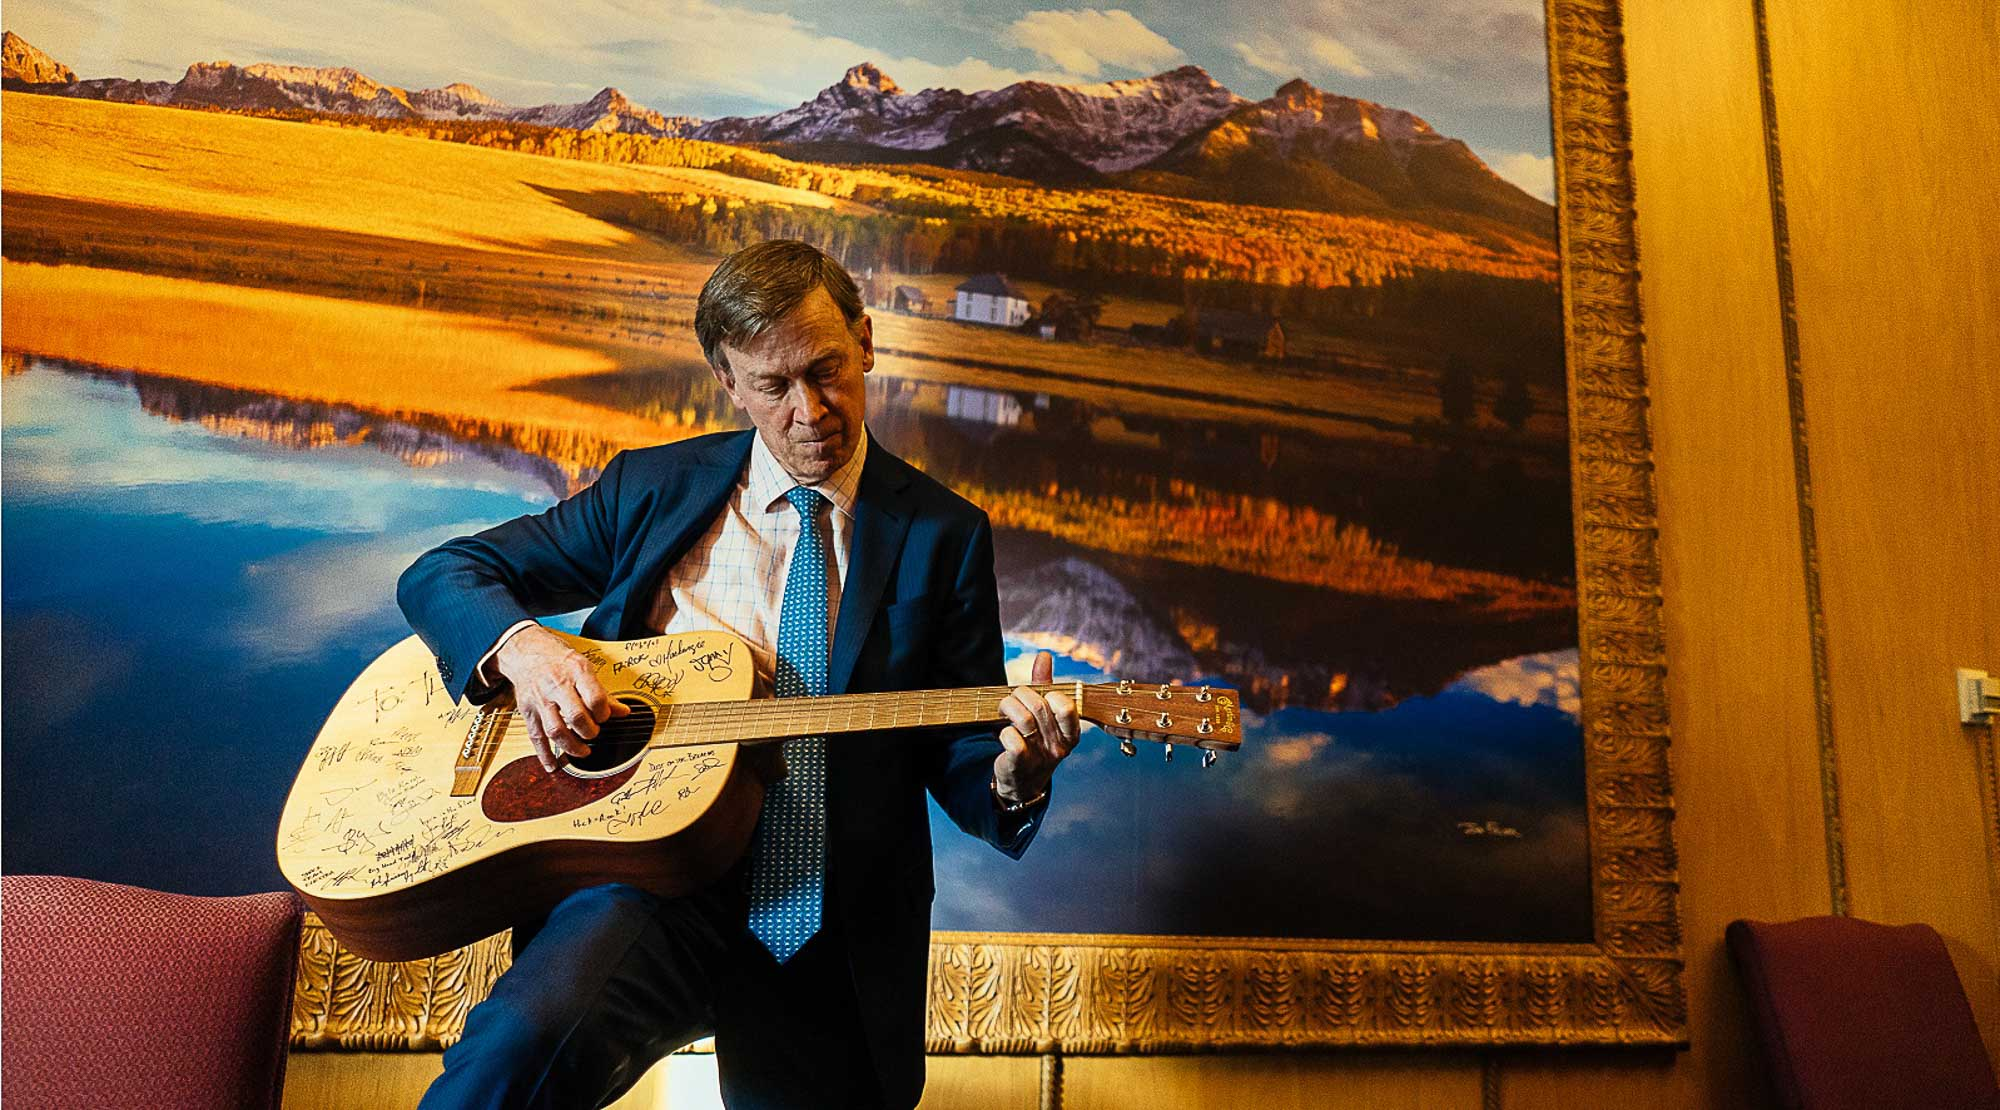 Governor John Hickenlooper plays his guitar.